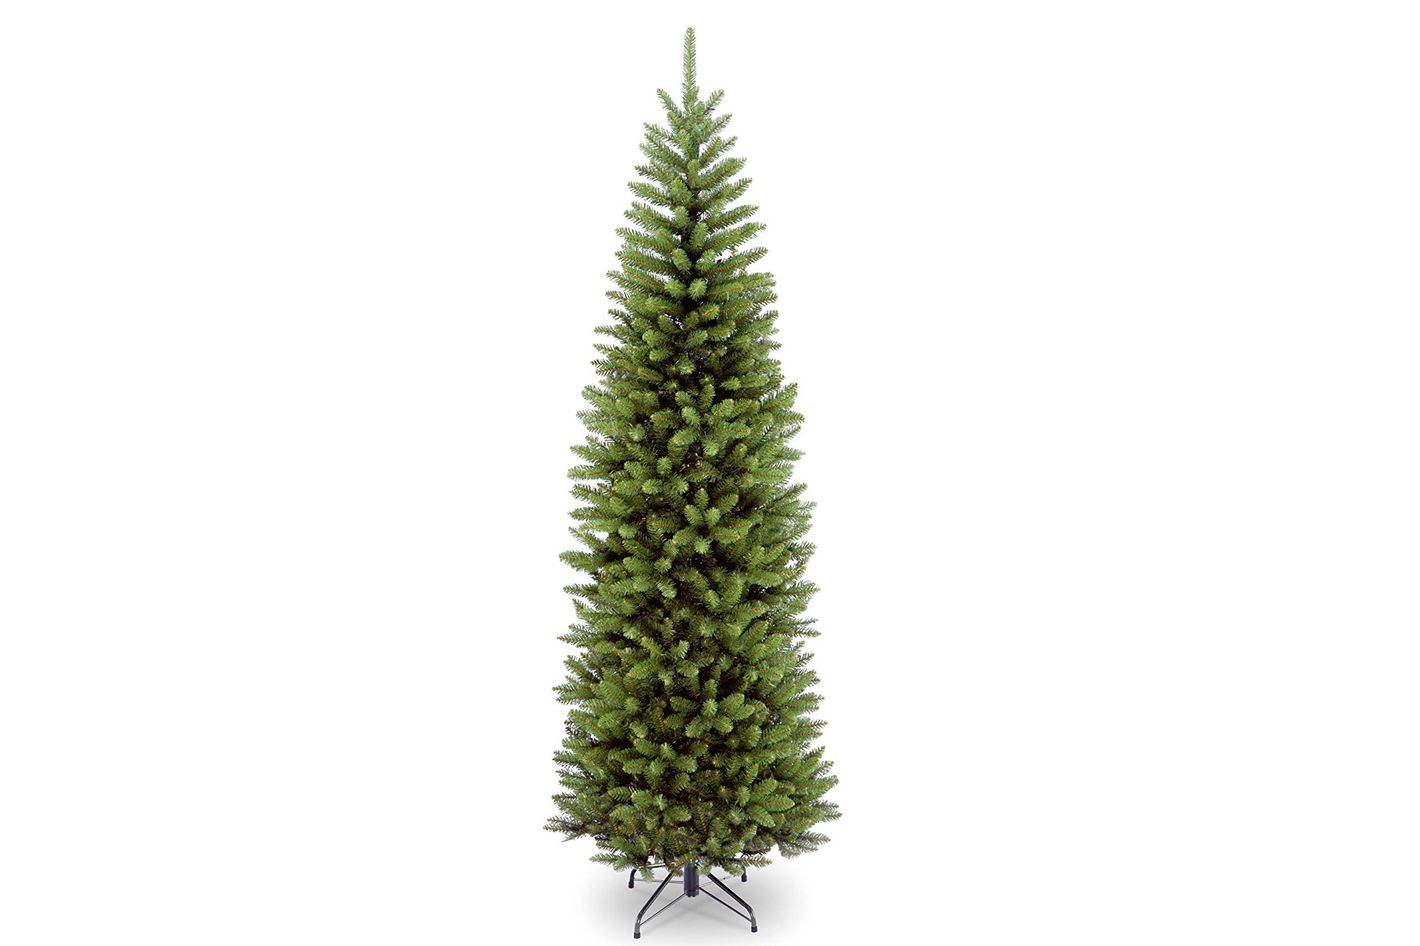 best 75 foot kingswood fir christmas tree - 2 Foot Christmas Tree